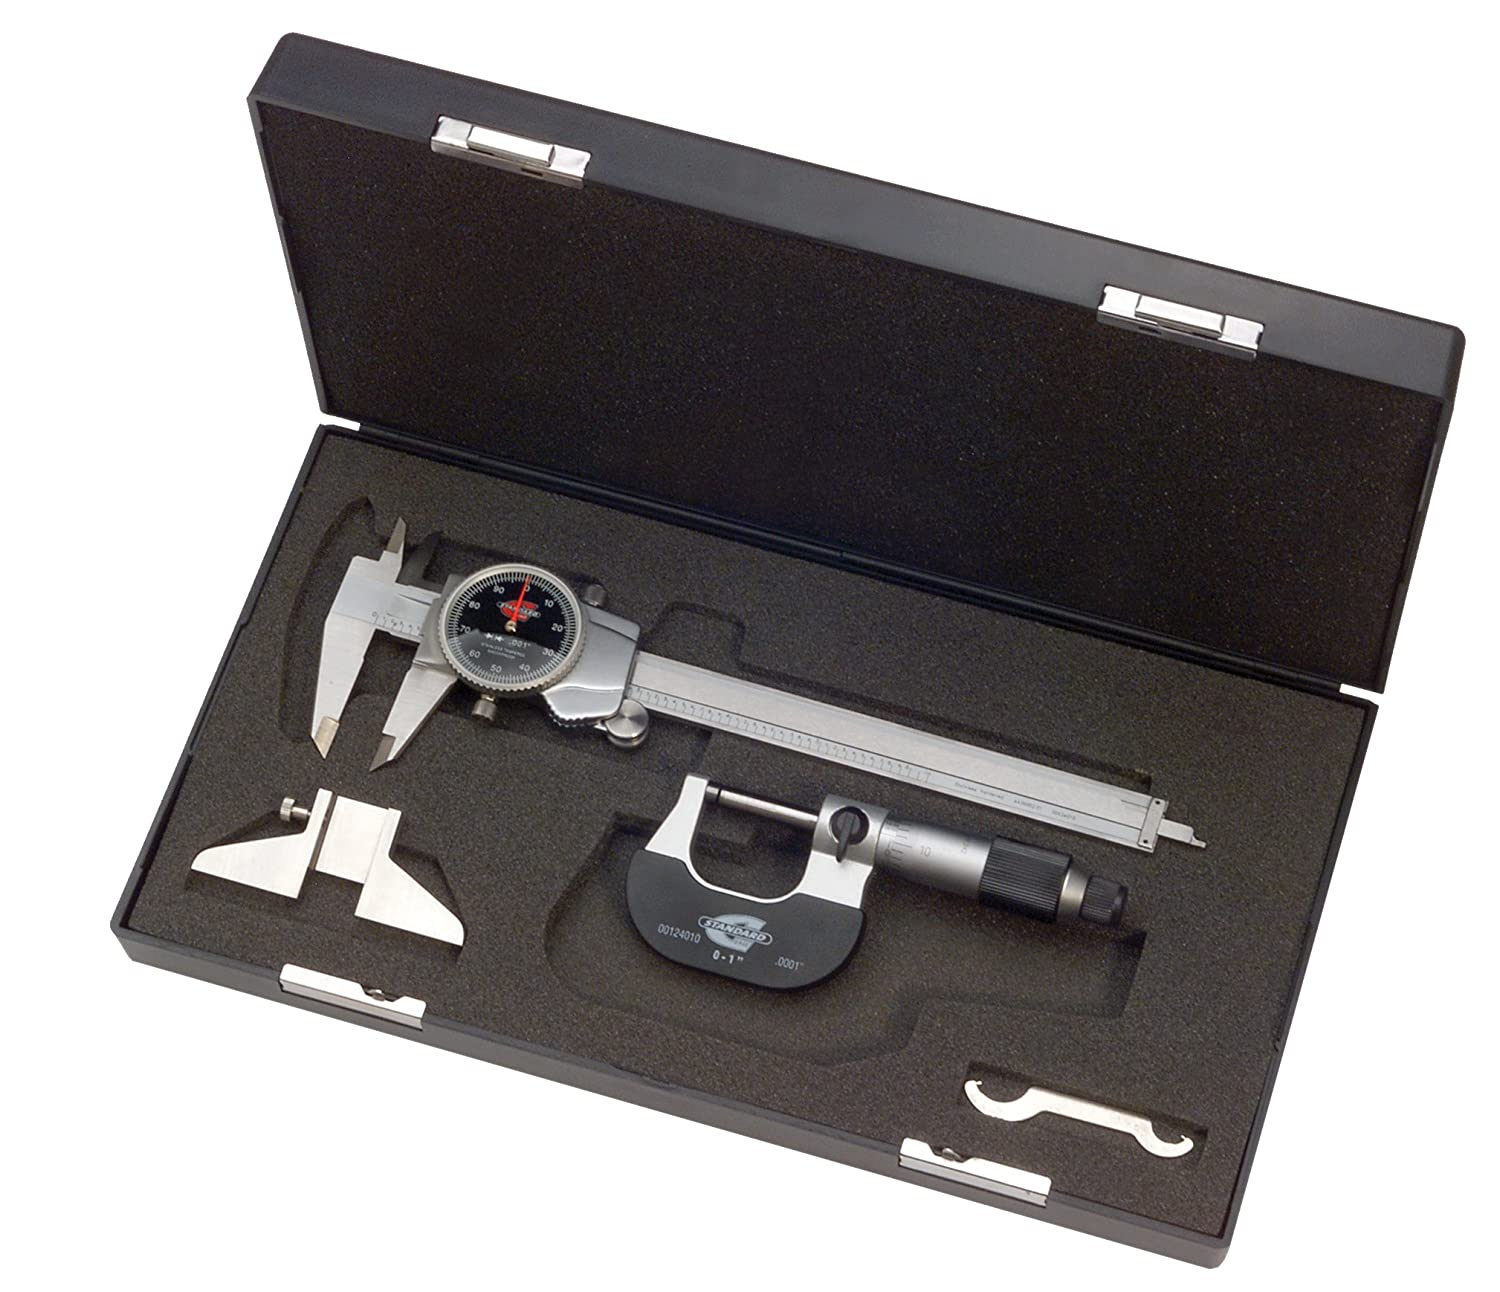 Standard Gage 00524103 Value Micrometer and Caliper Set (Black Face) Hexagon Metrology